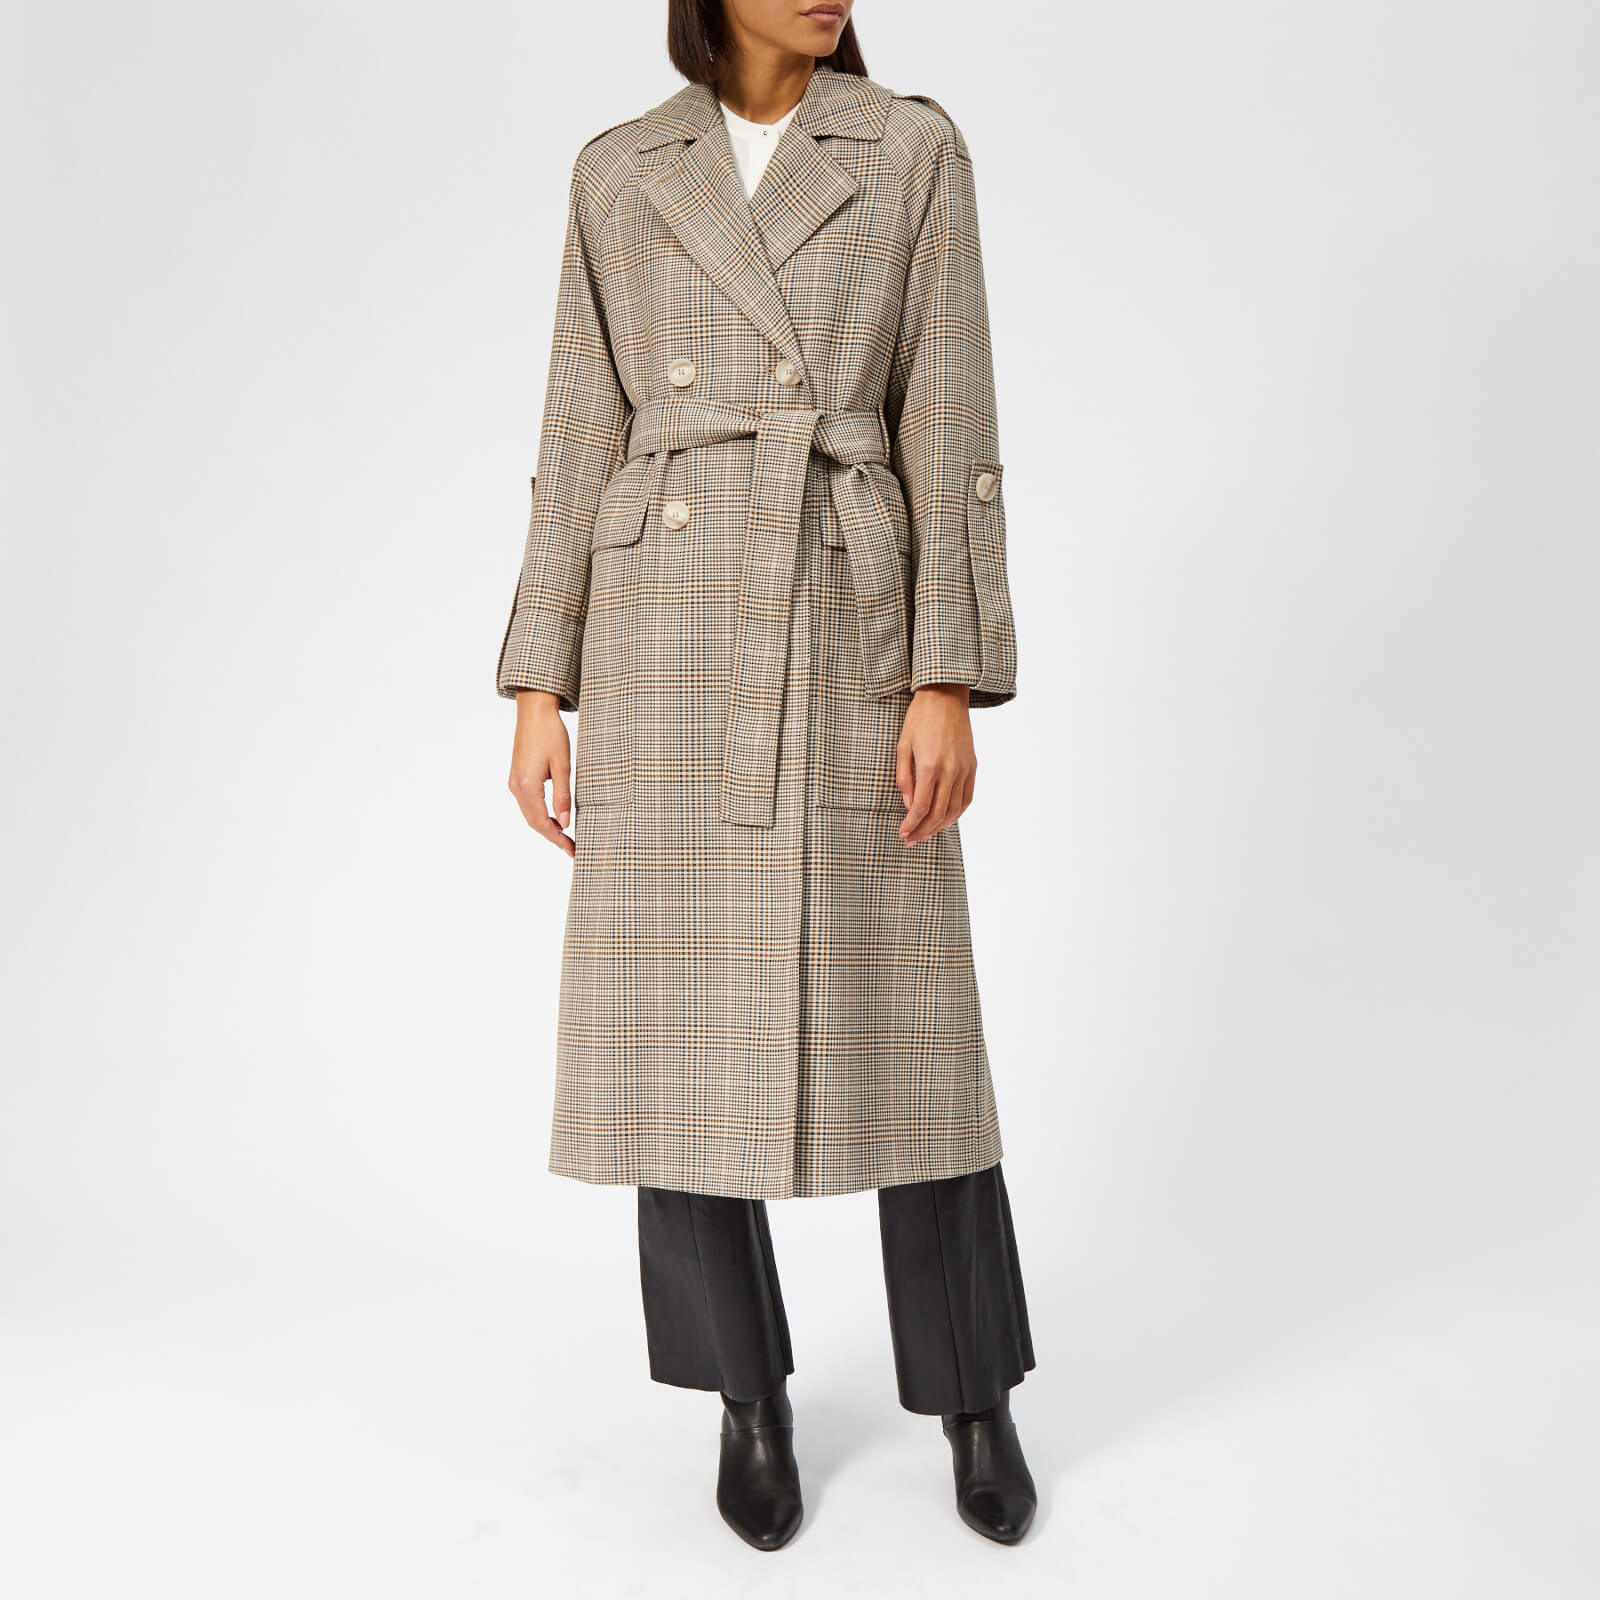 great discount sale for whole family terrific value Whistles Women's Check Trench Coat - Multicolour